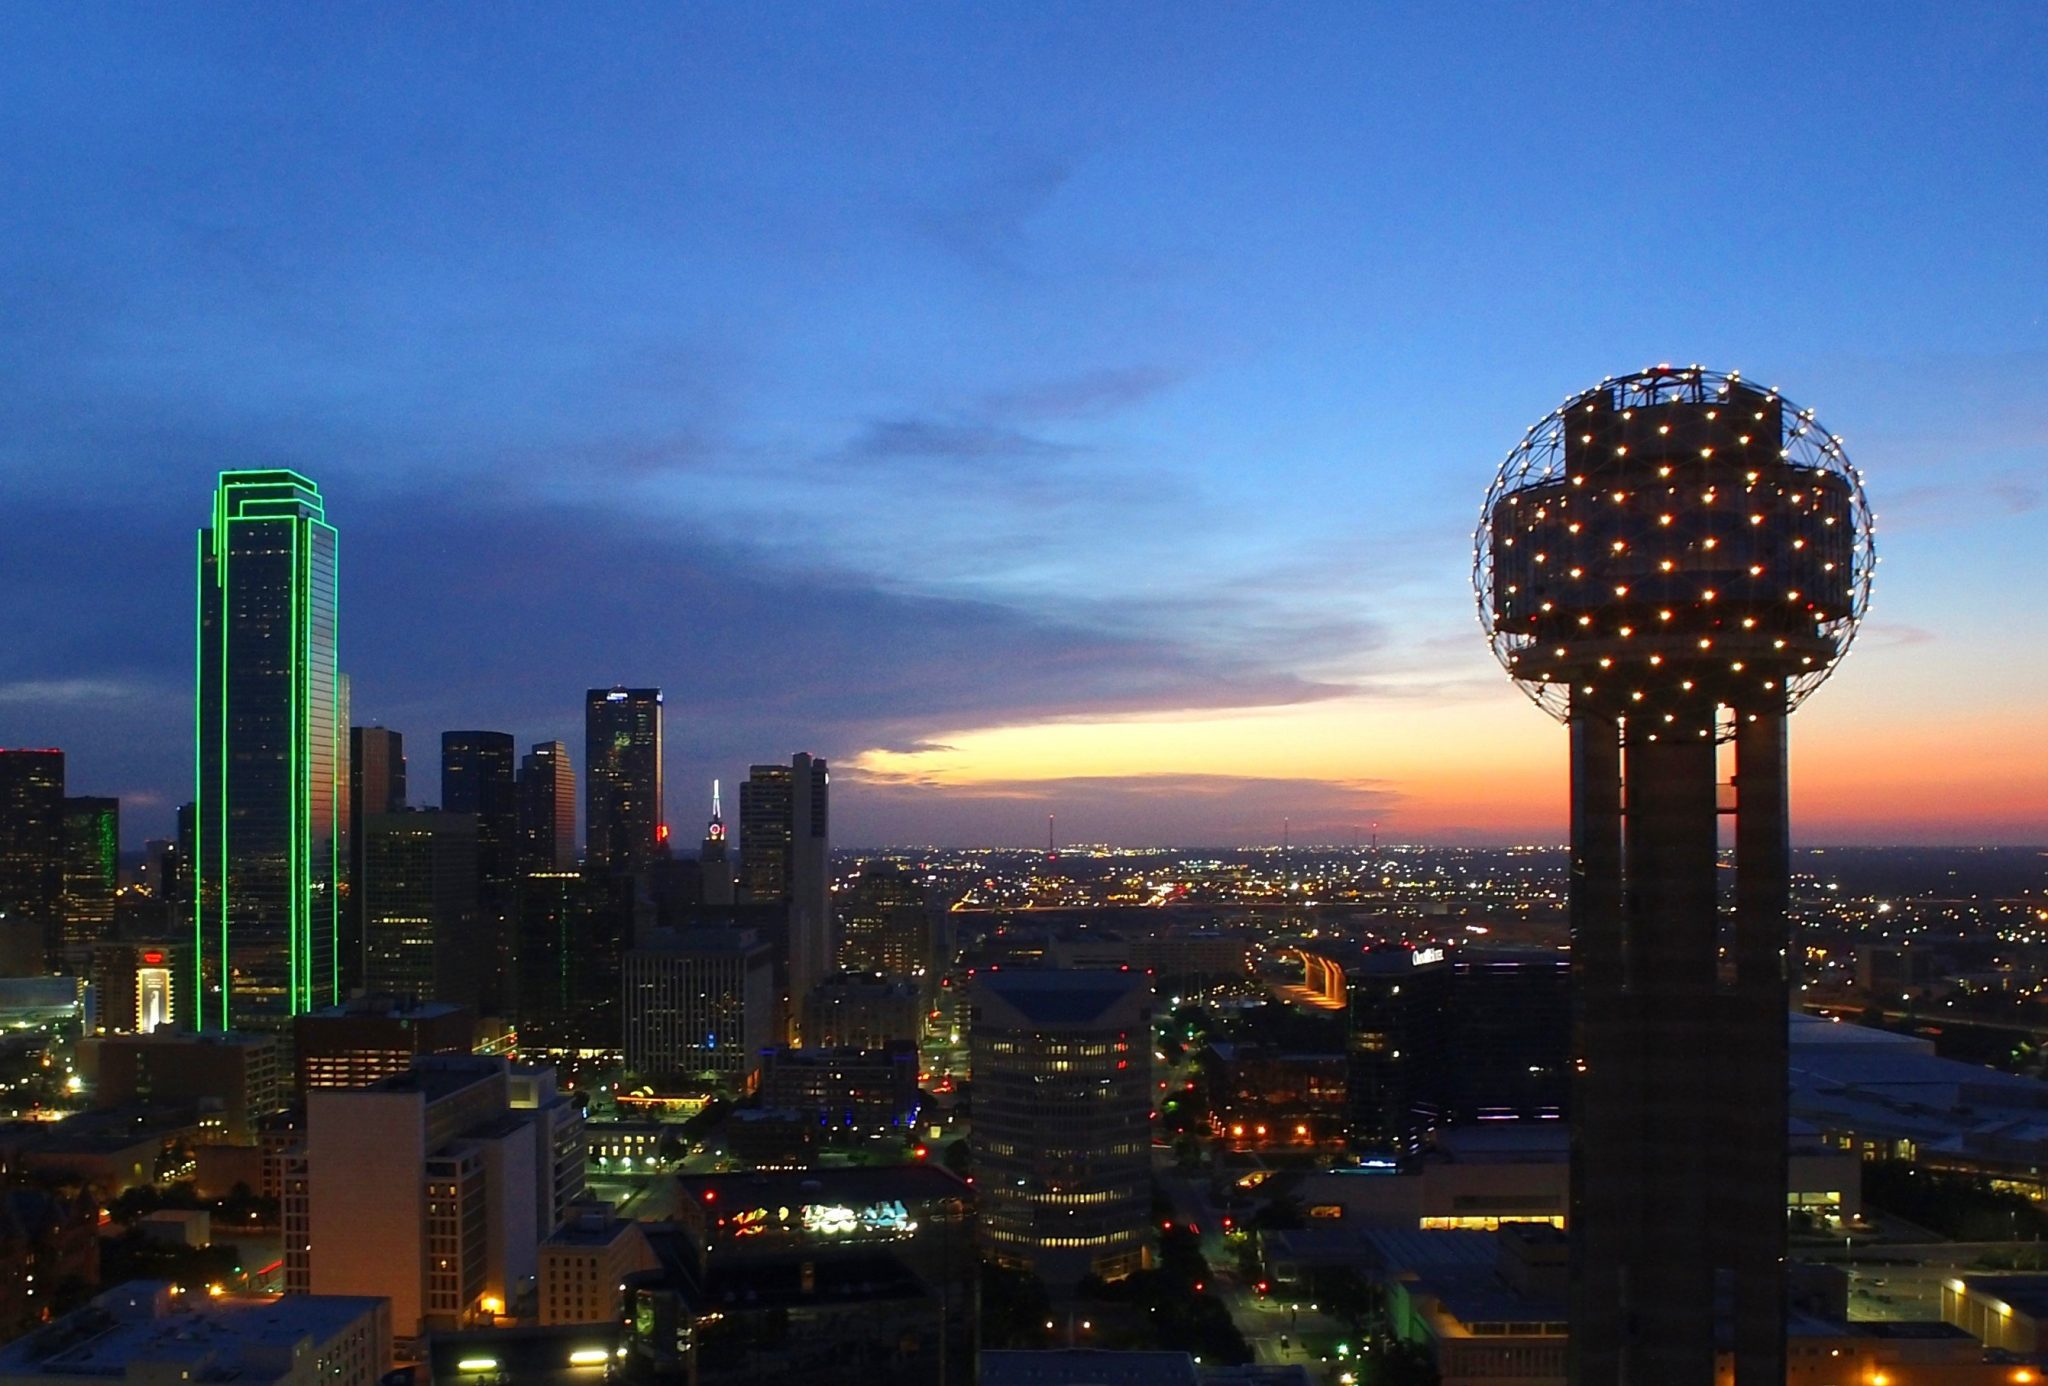 2 People Reunion Tower Wants You to Know